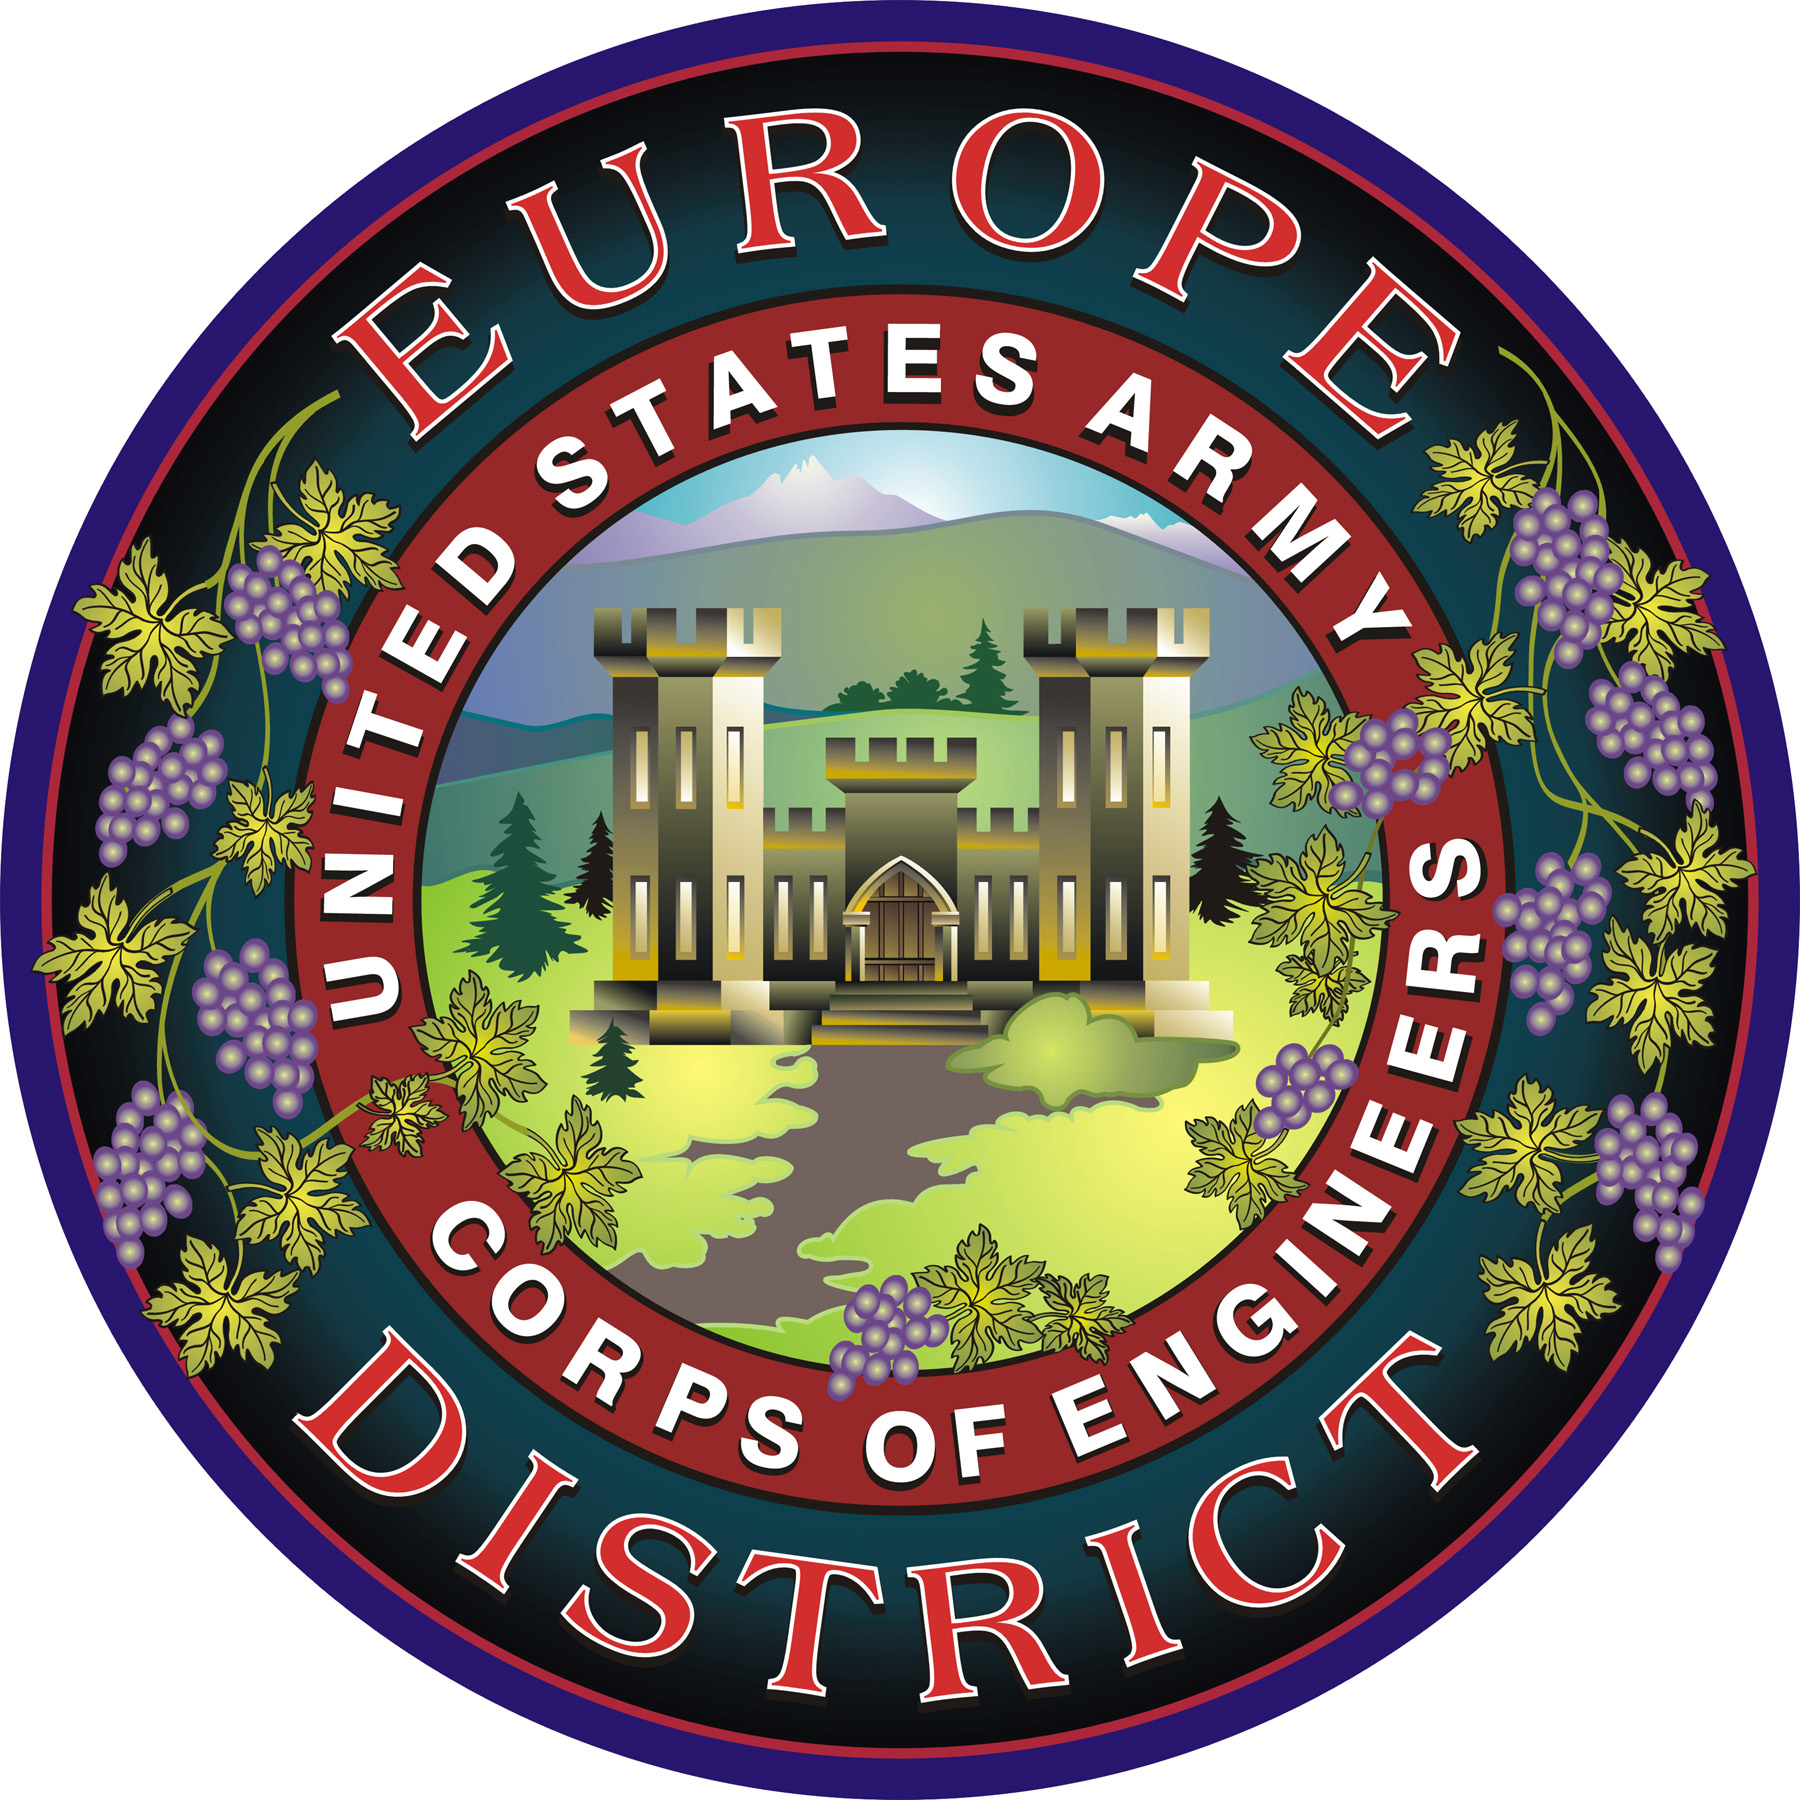 U.S. Army Corps of Engineers, Europe District.